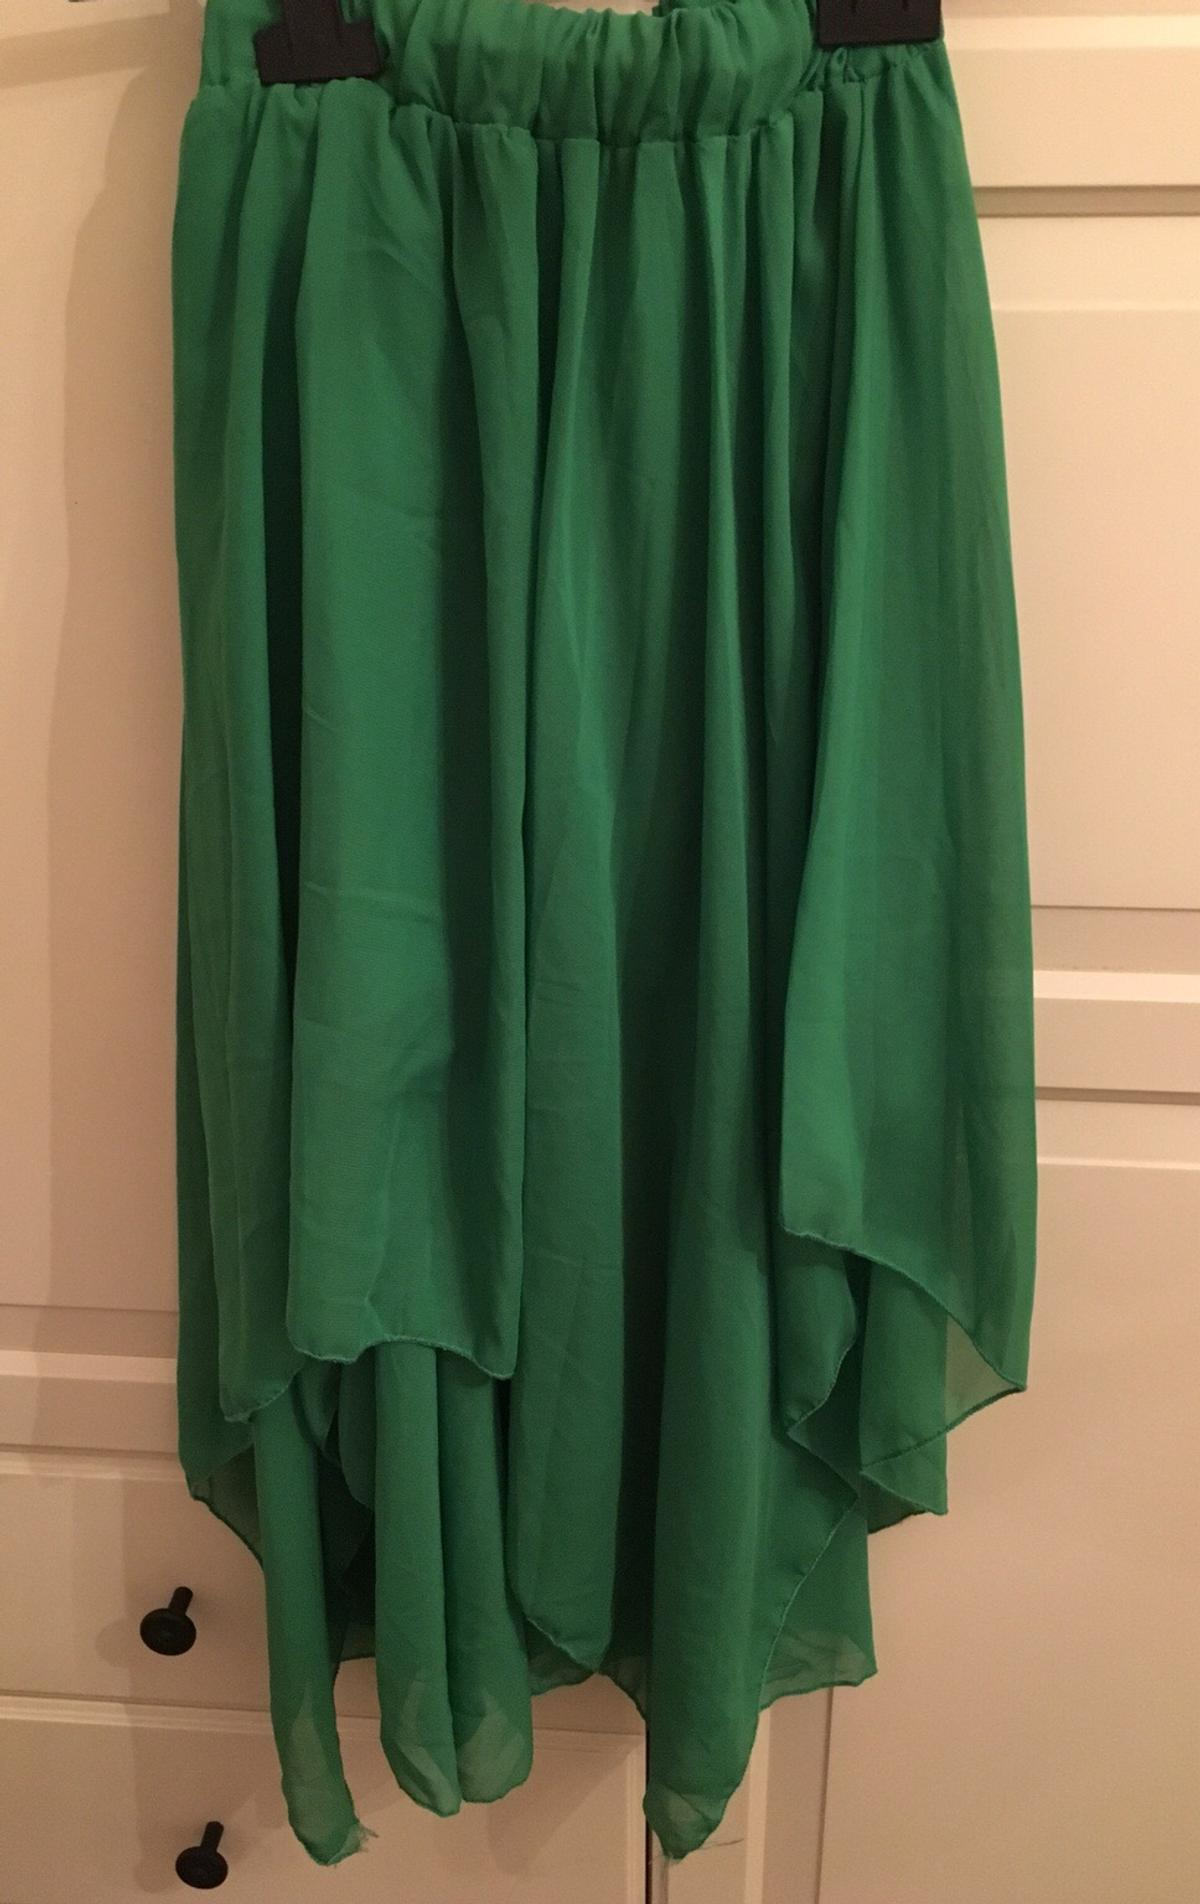 hot sale online a00ad 336a7 Gonna lunga dietro tg 40 verde